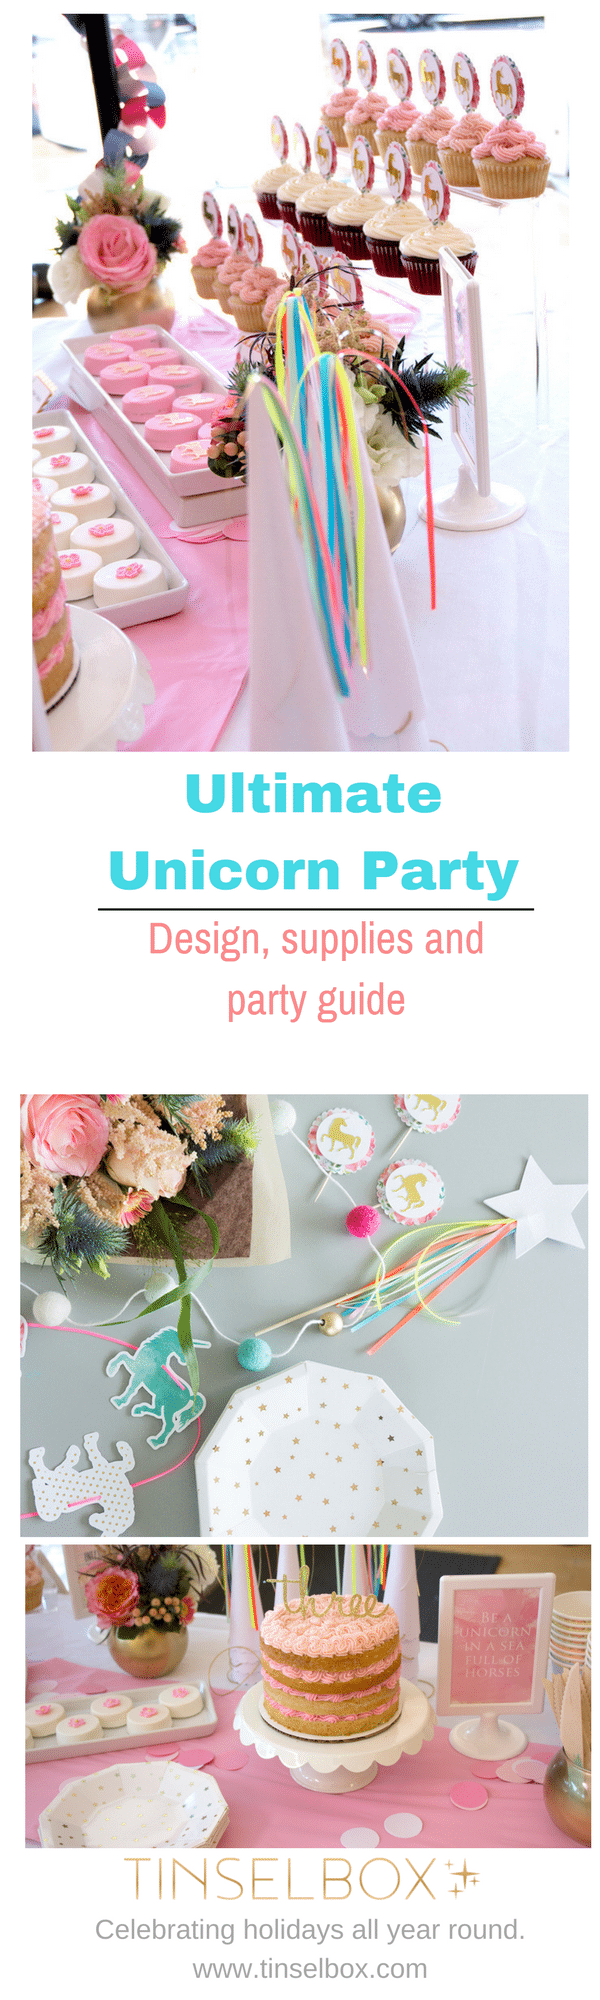 Darling, Elegant and Magical Unicorn Party with Supply and Design Guide. Get inspired or buy the supplies.